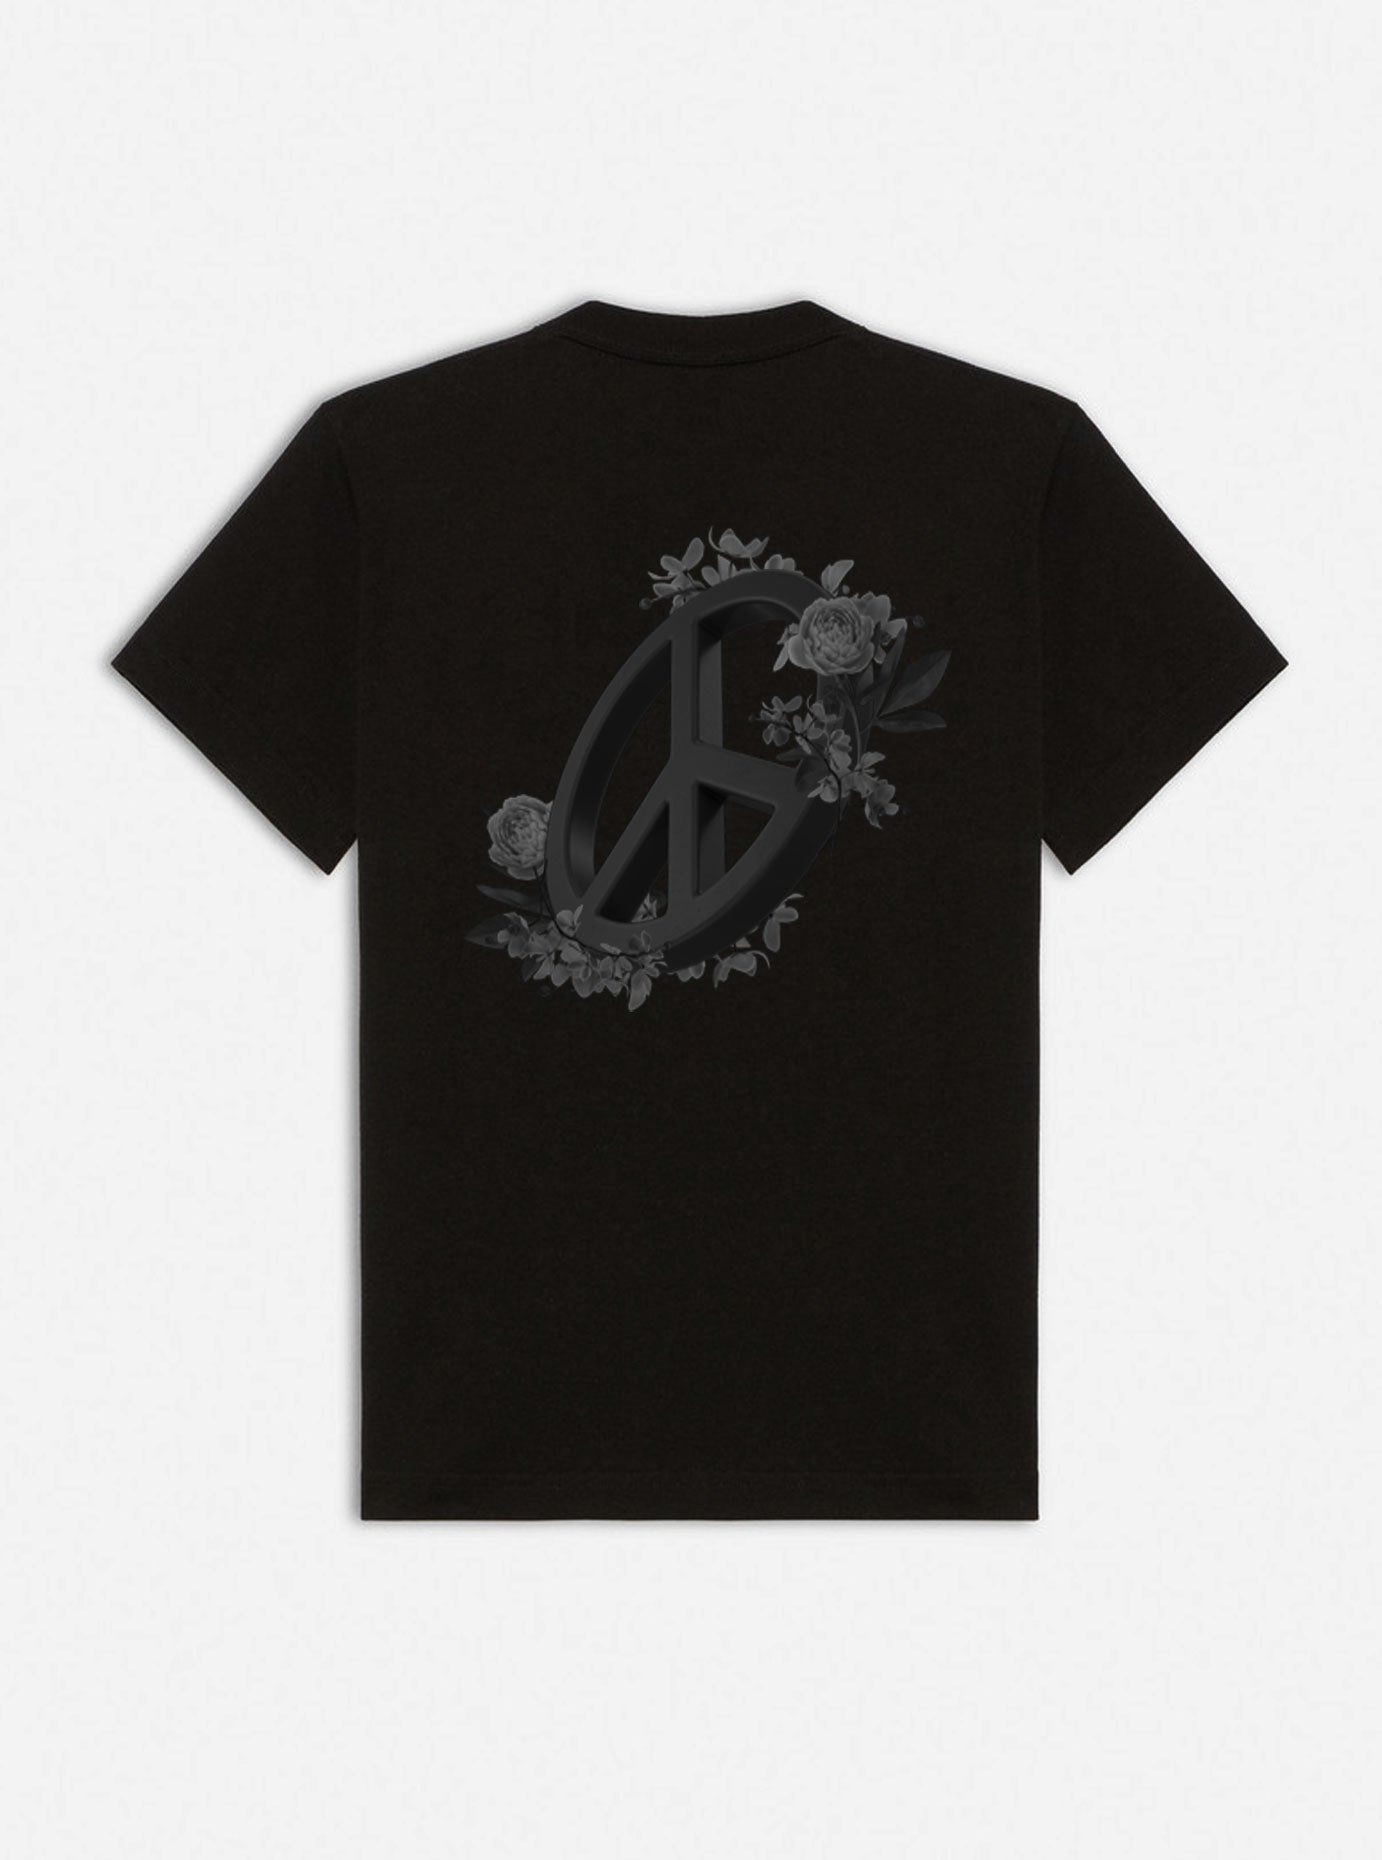 PEACE TSHIRT -  BLACK - SOLD OUT - blupstore